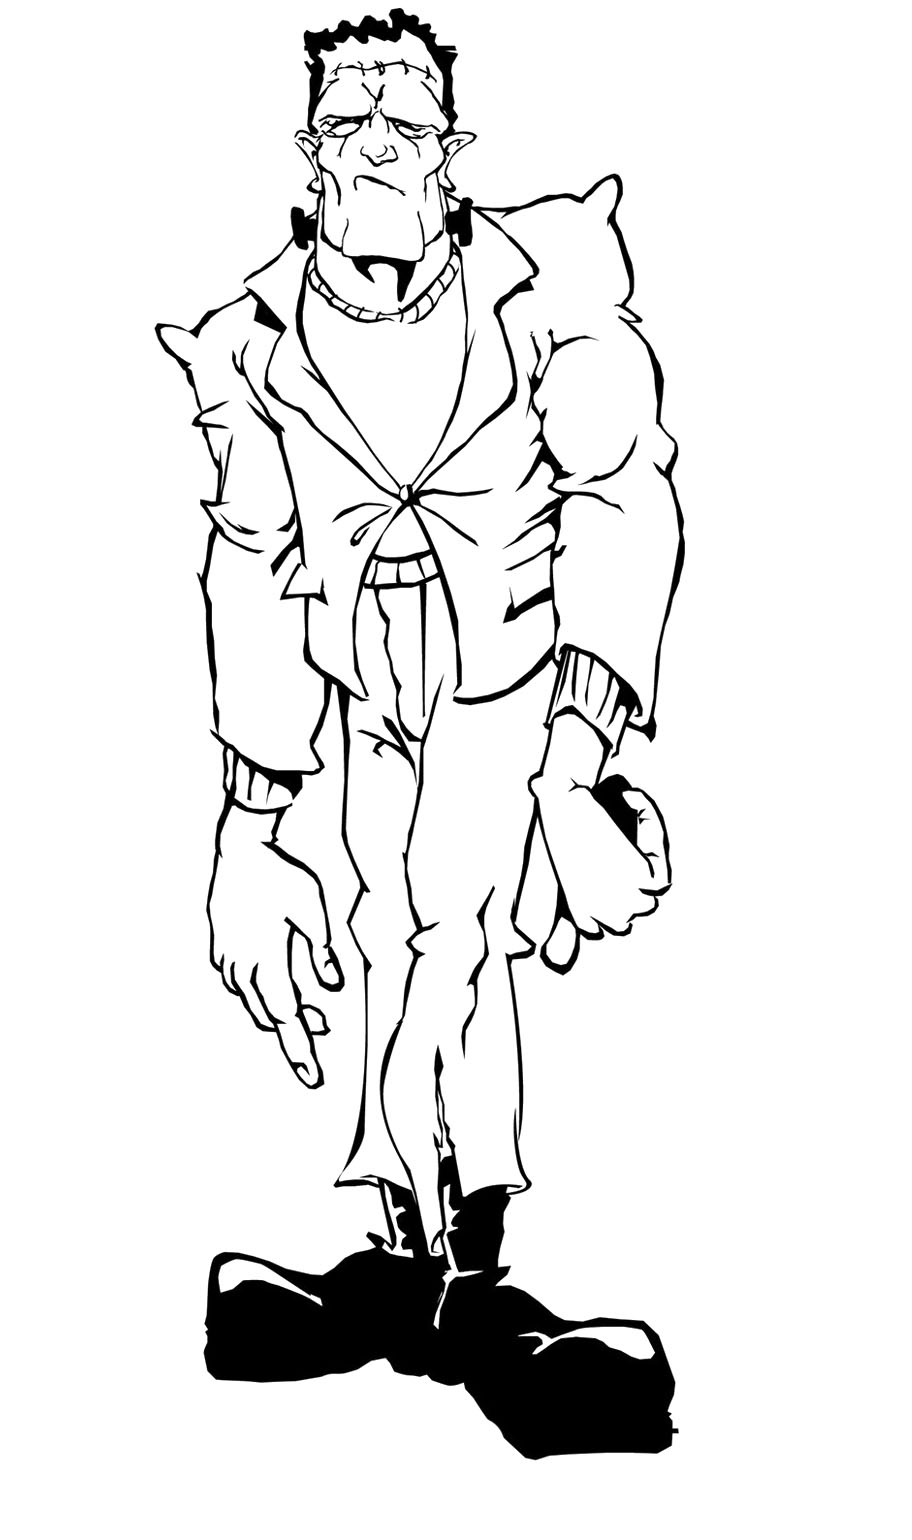 Frankenstein Coloring Pages Best Coloring Pages For Kids